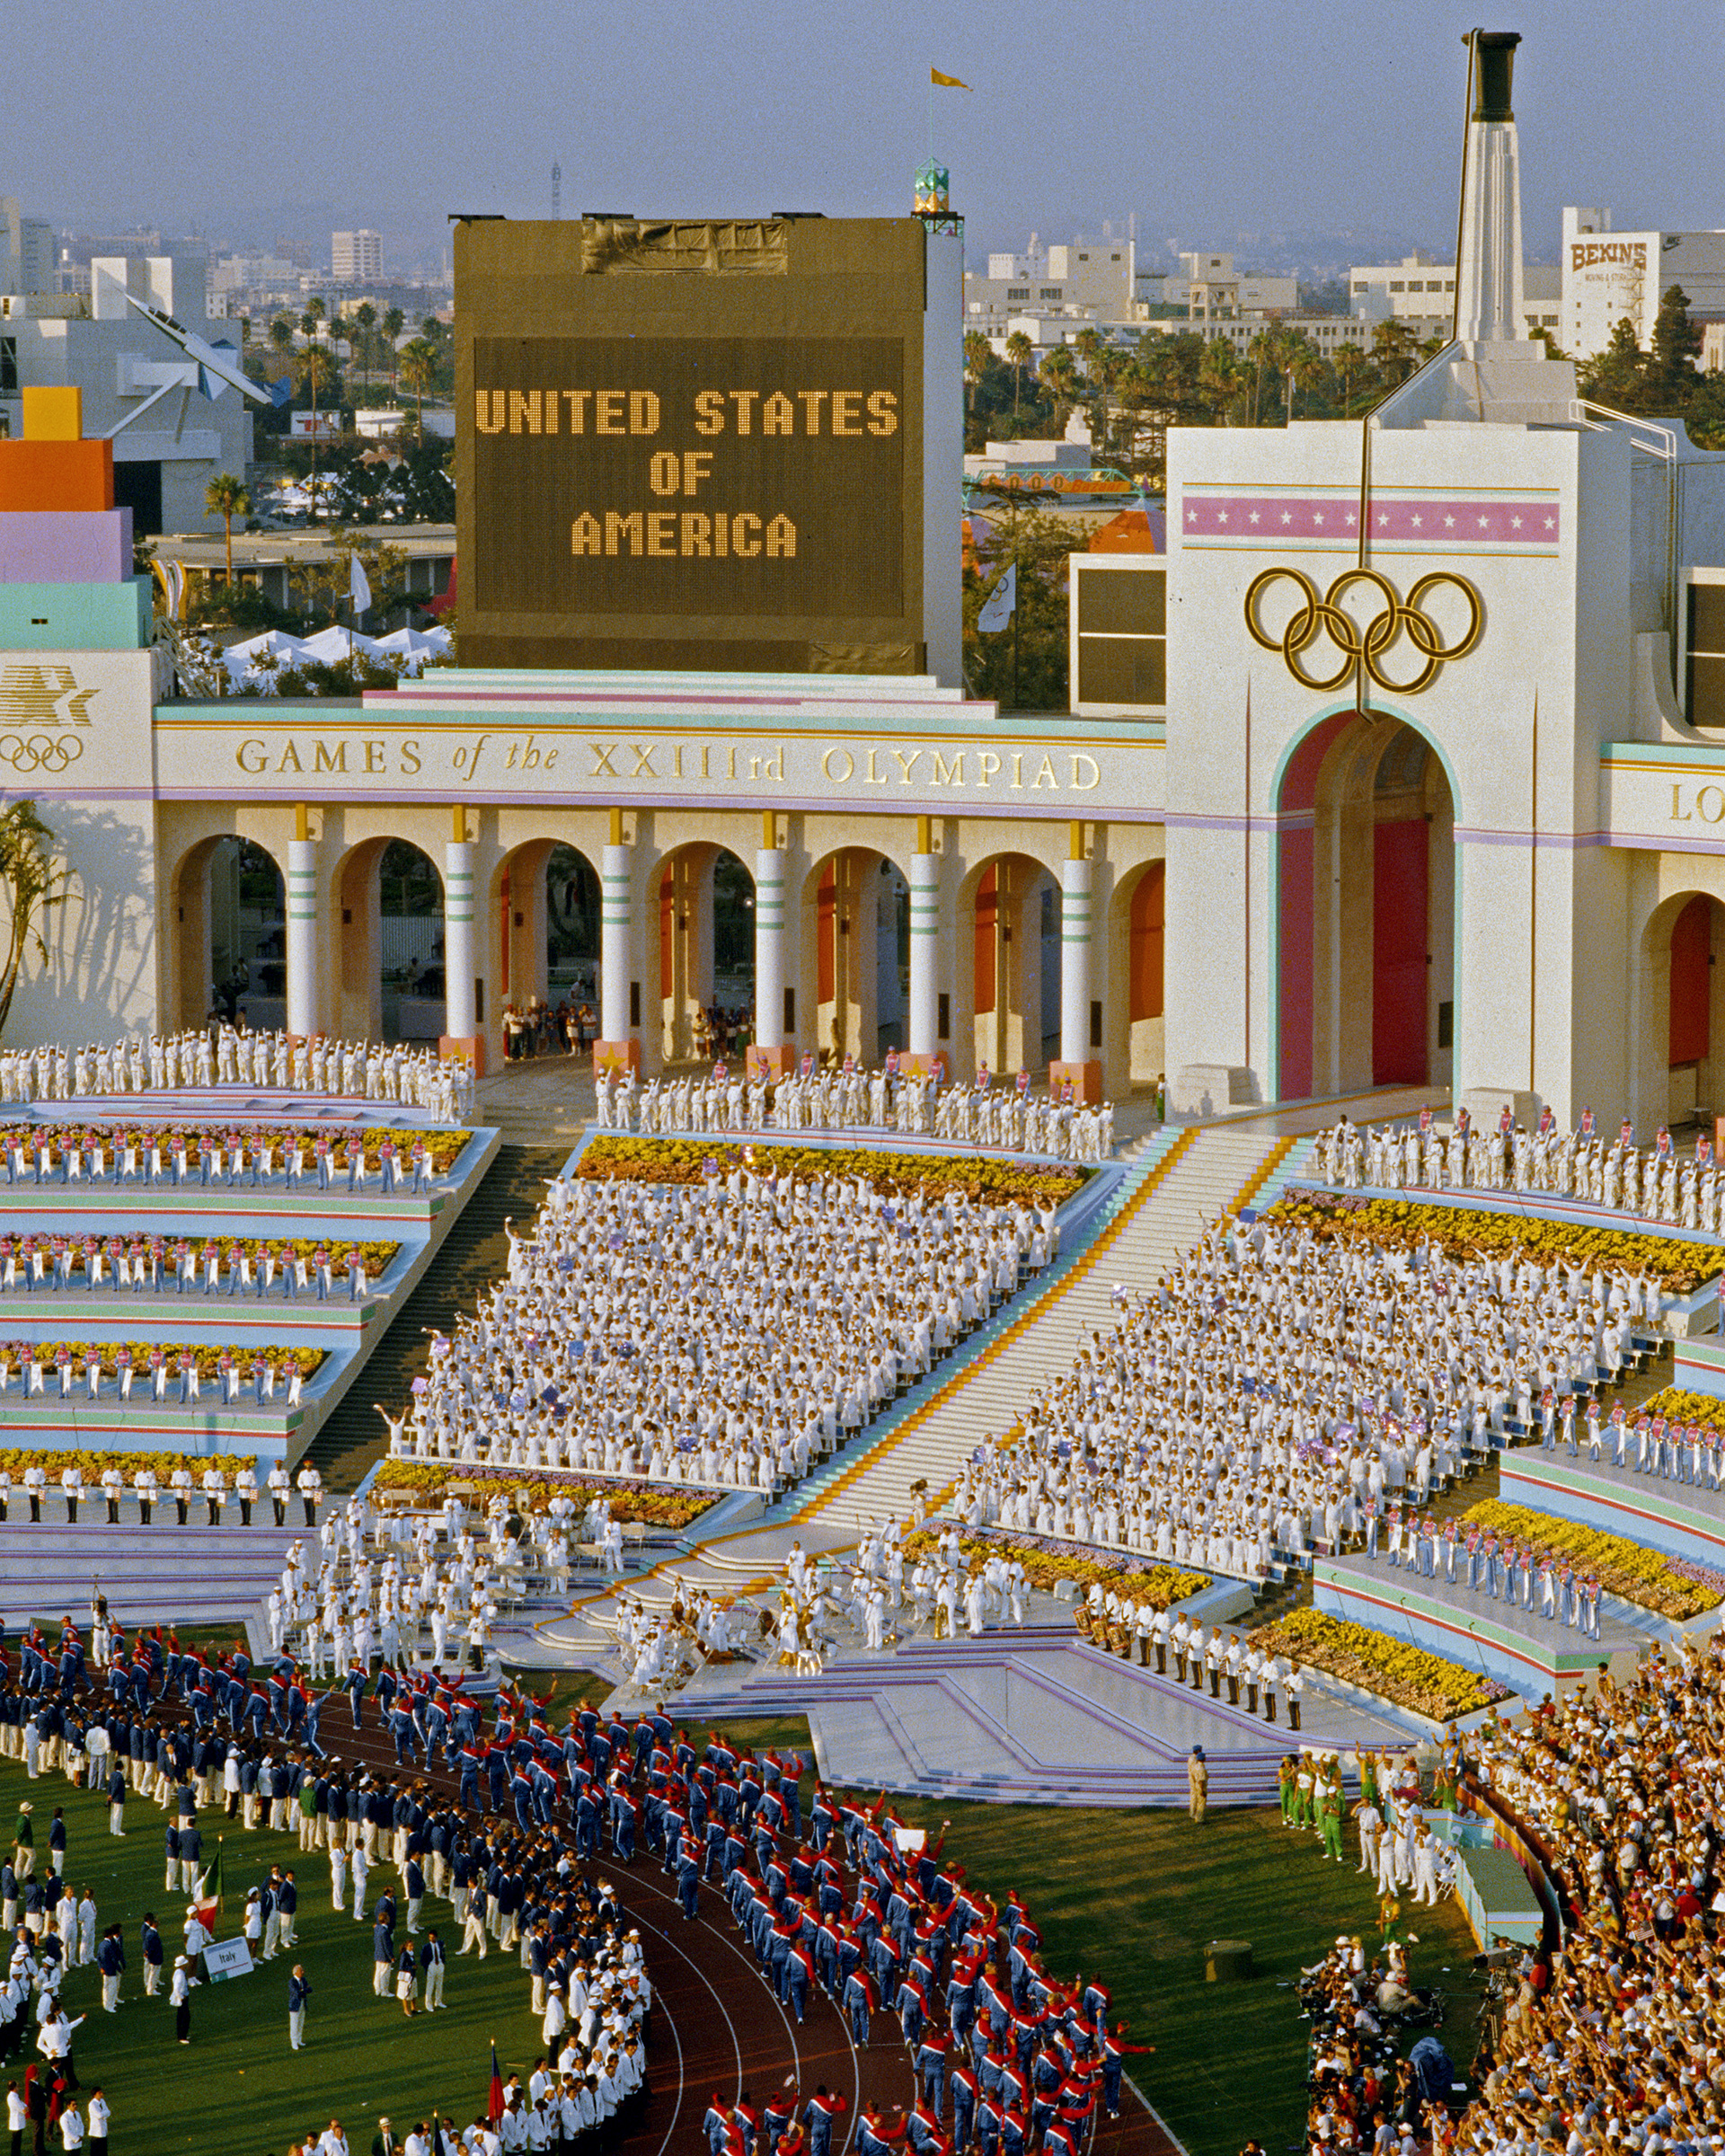 The United States of America Team parade around the stadium infield during the opening ceremony for the XXIII Olympic Games on 28 July 1984 at the Los Angeles Memorial Coliseum in Los Angeles, California.